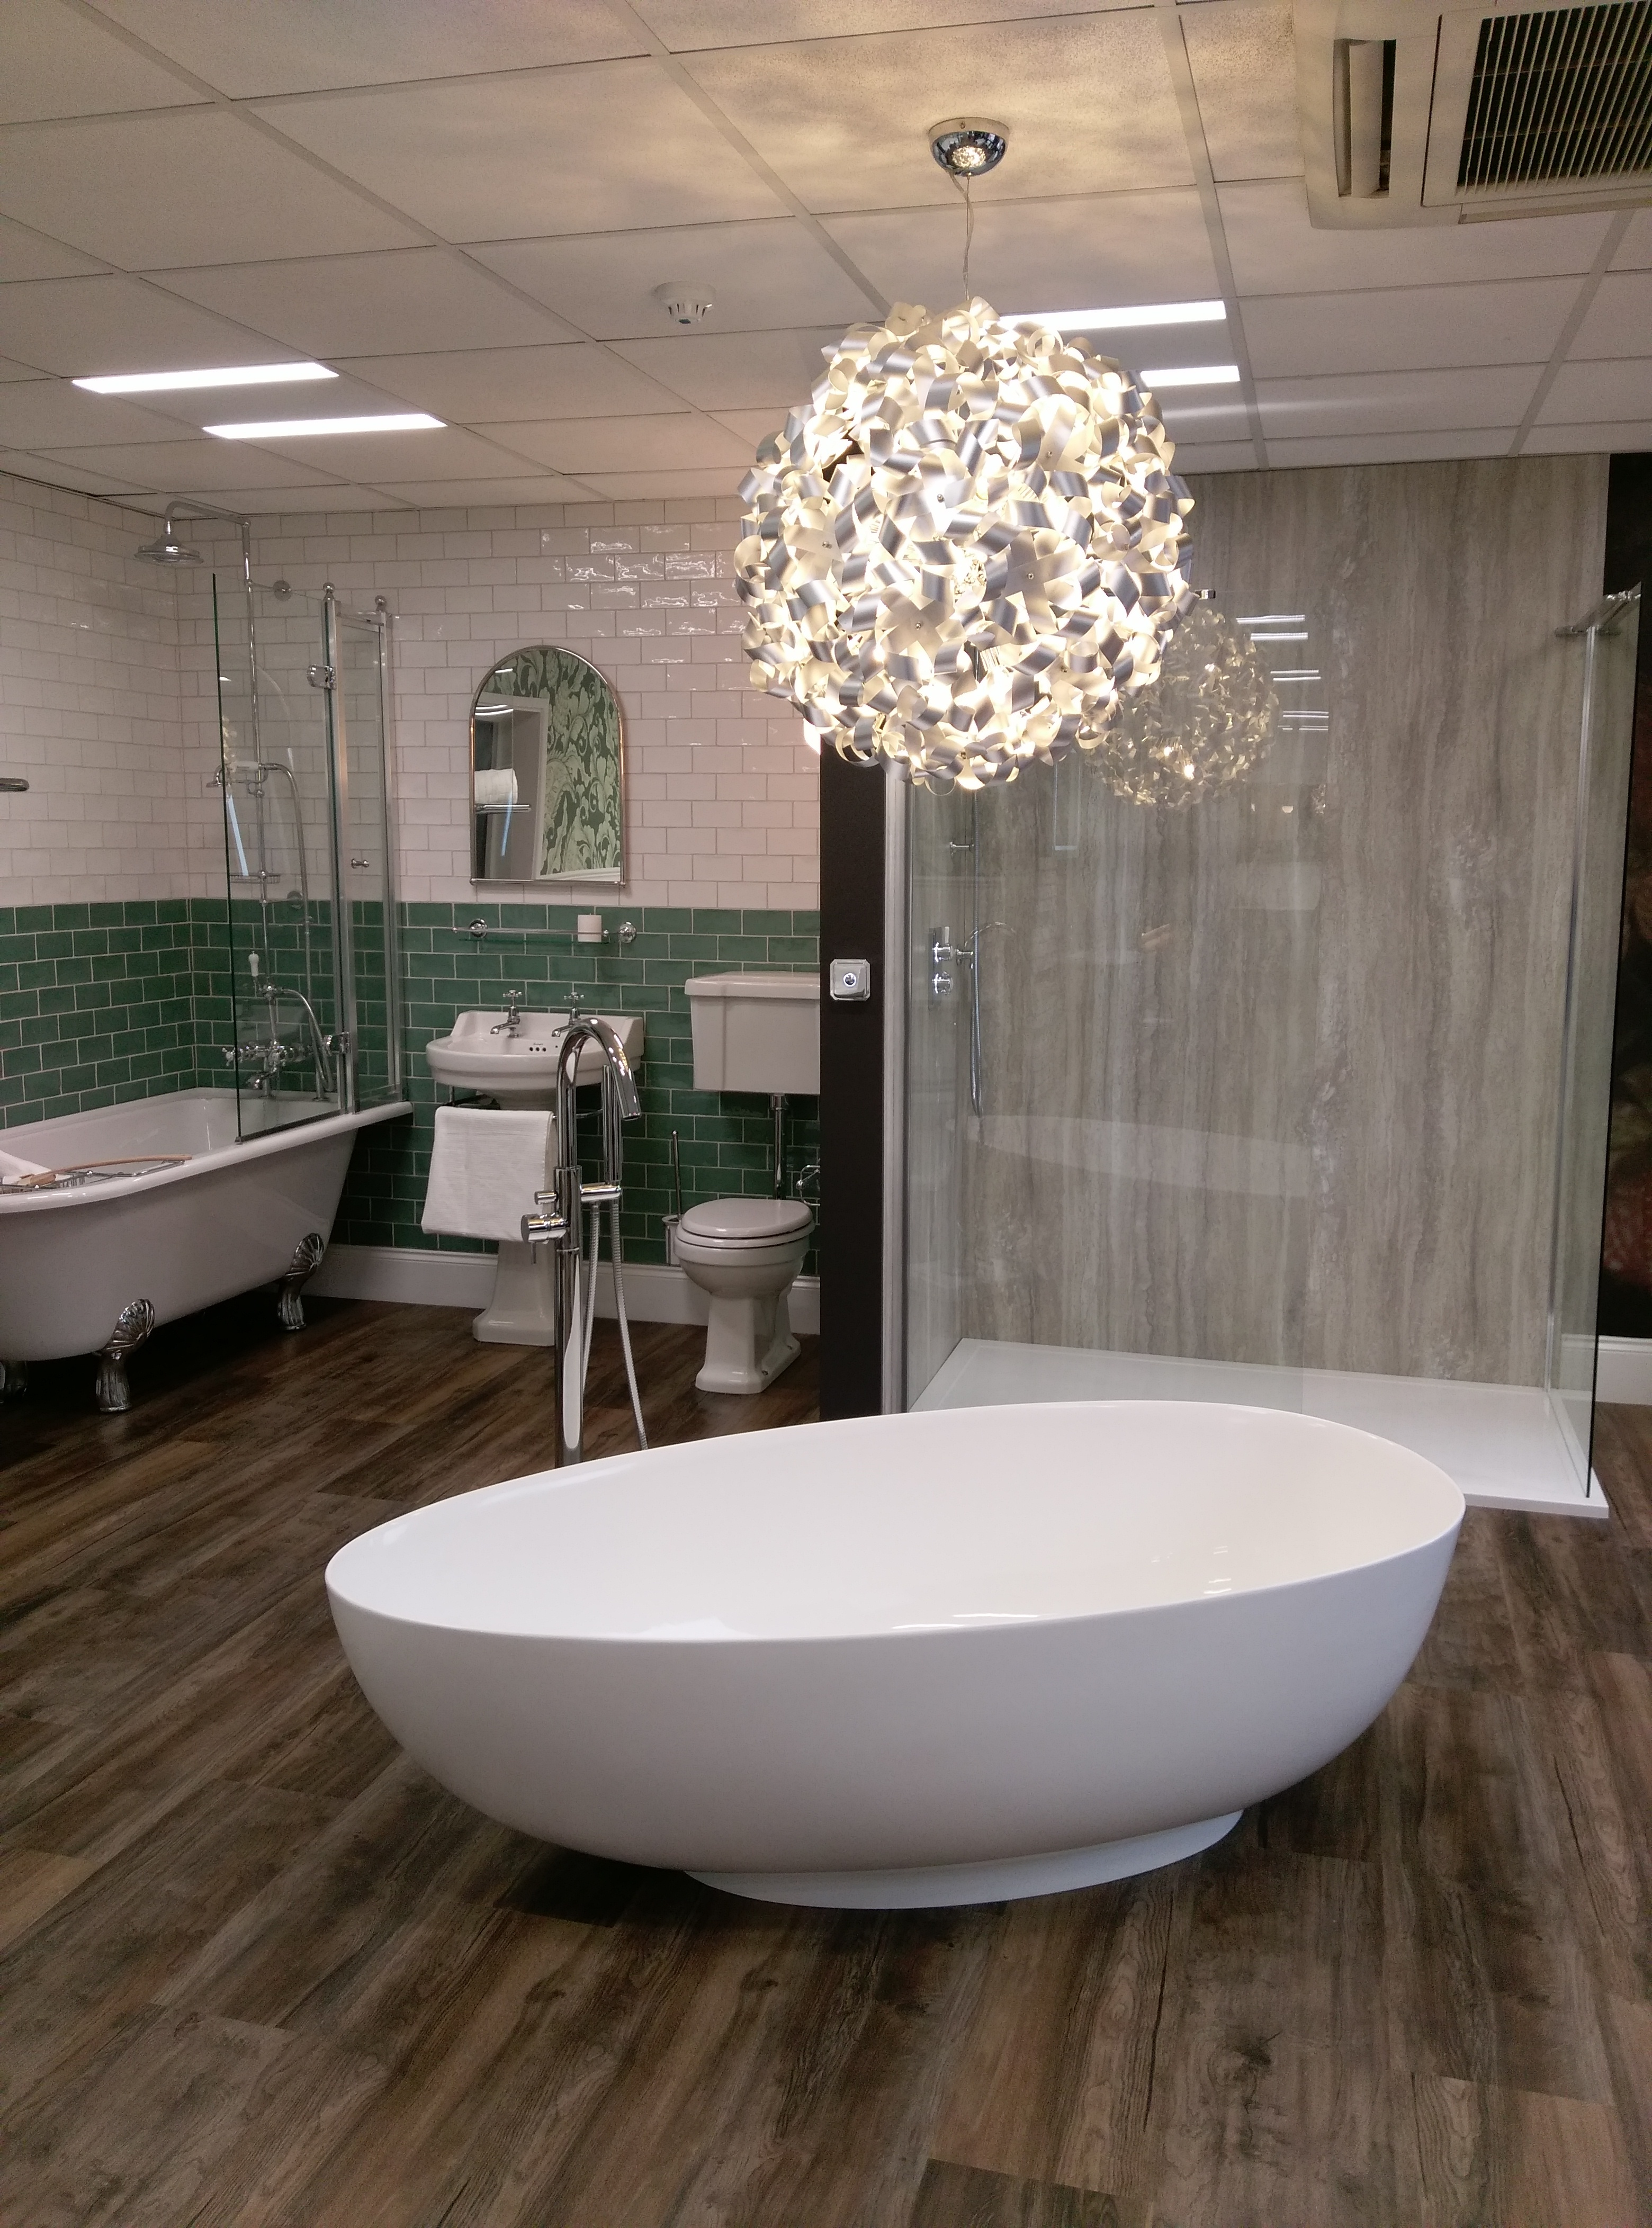 contemporary bath showroom s trend on kitchen at with design bathtub stores bathroom terior bathrooms remodel new and seattle fresh unique west terrific